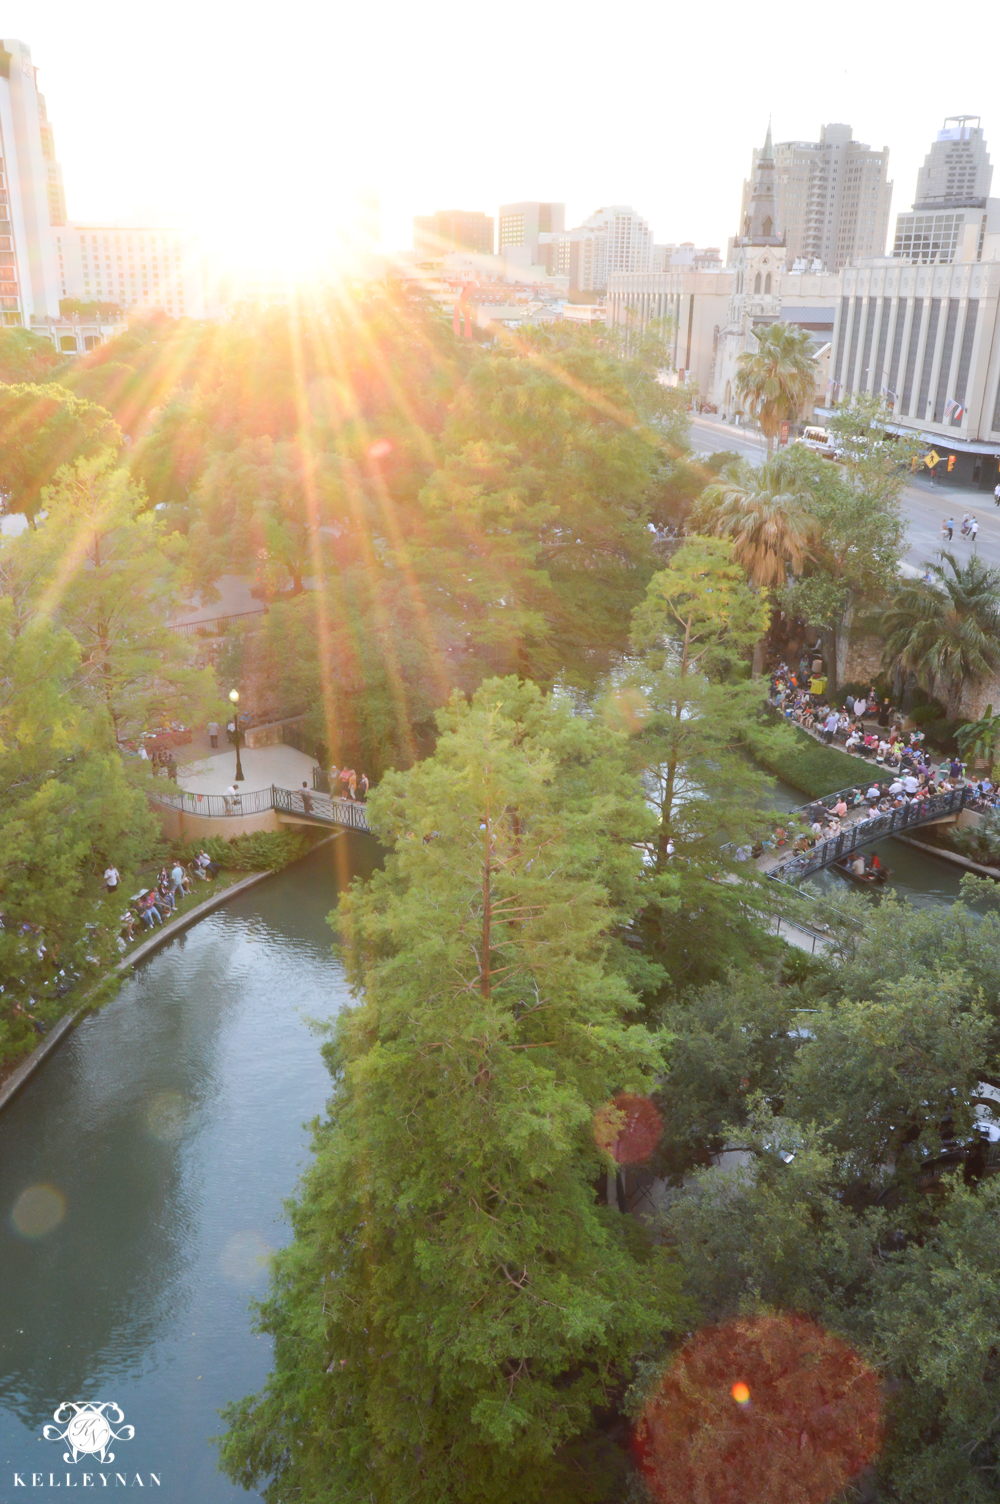 Texas Trip and San Antonio Fiesta Week-river parade